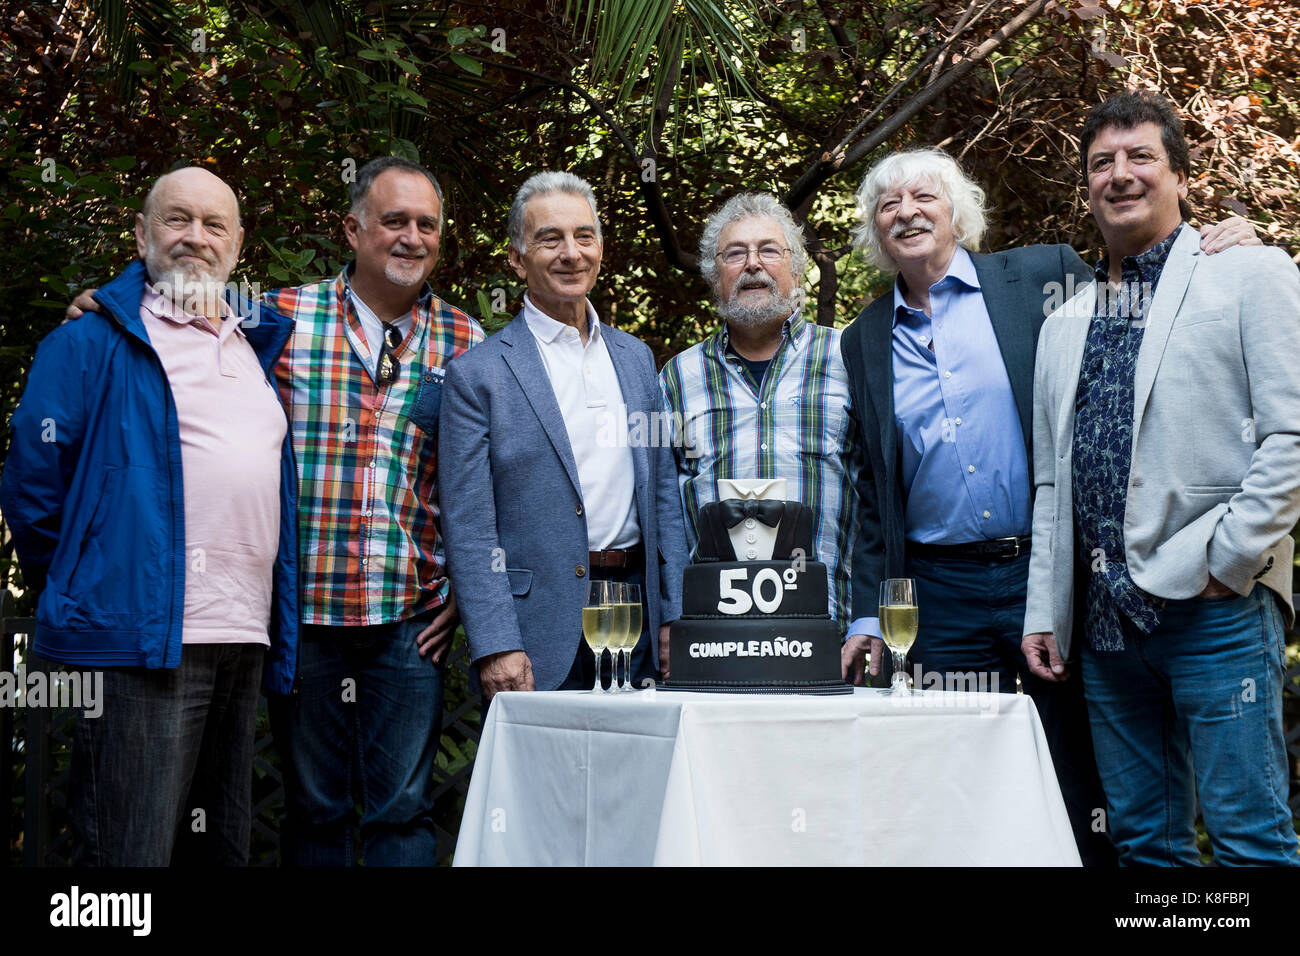 Madrid, Spain. 19th Sep, 2017. Les Luthiers during the press conference celebrating its 50th anniversary in Madrid, Stock Photo